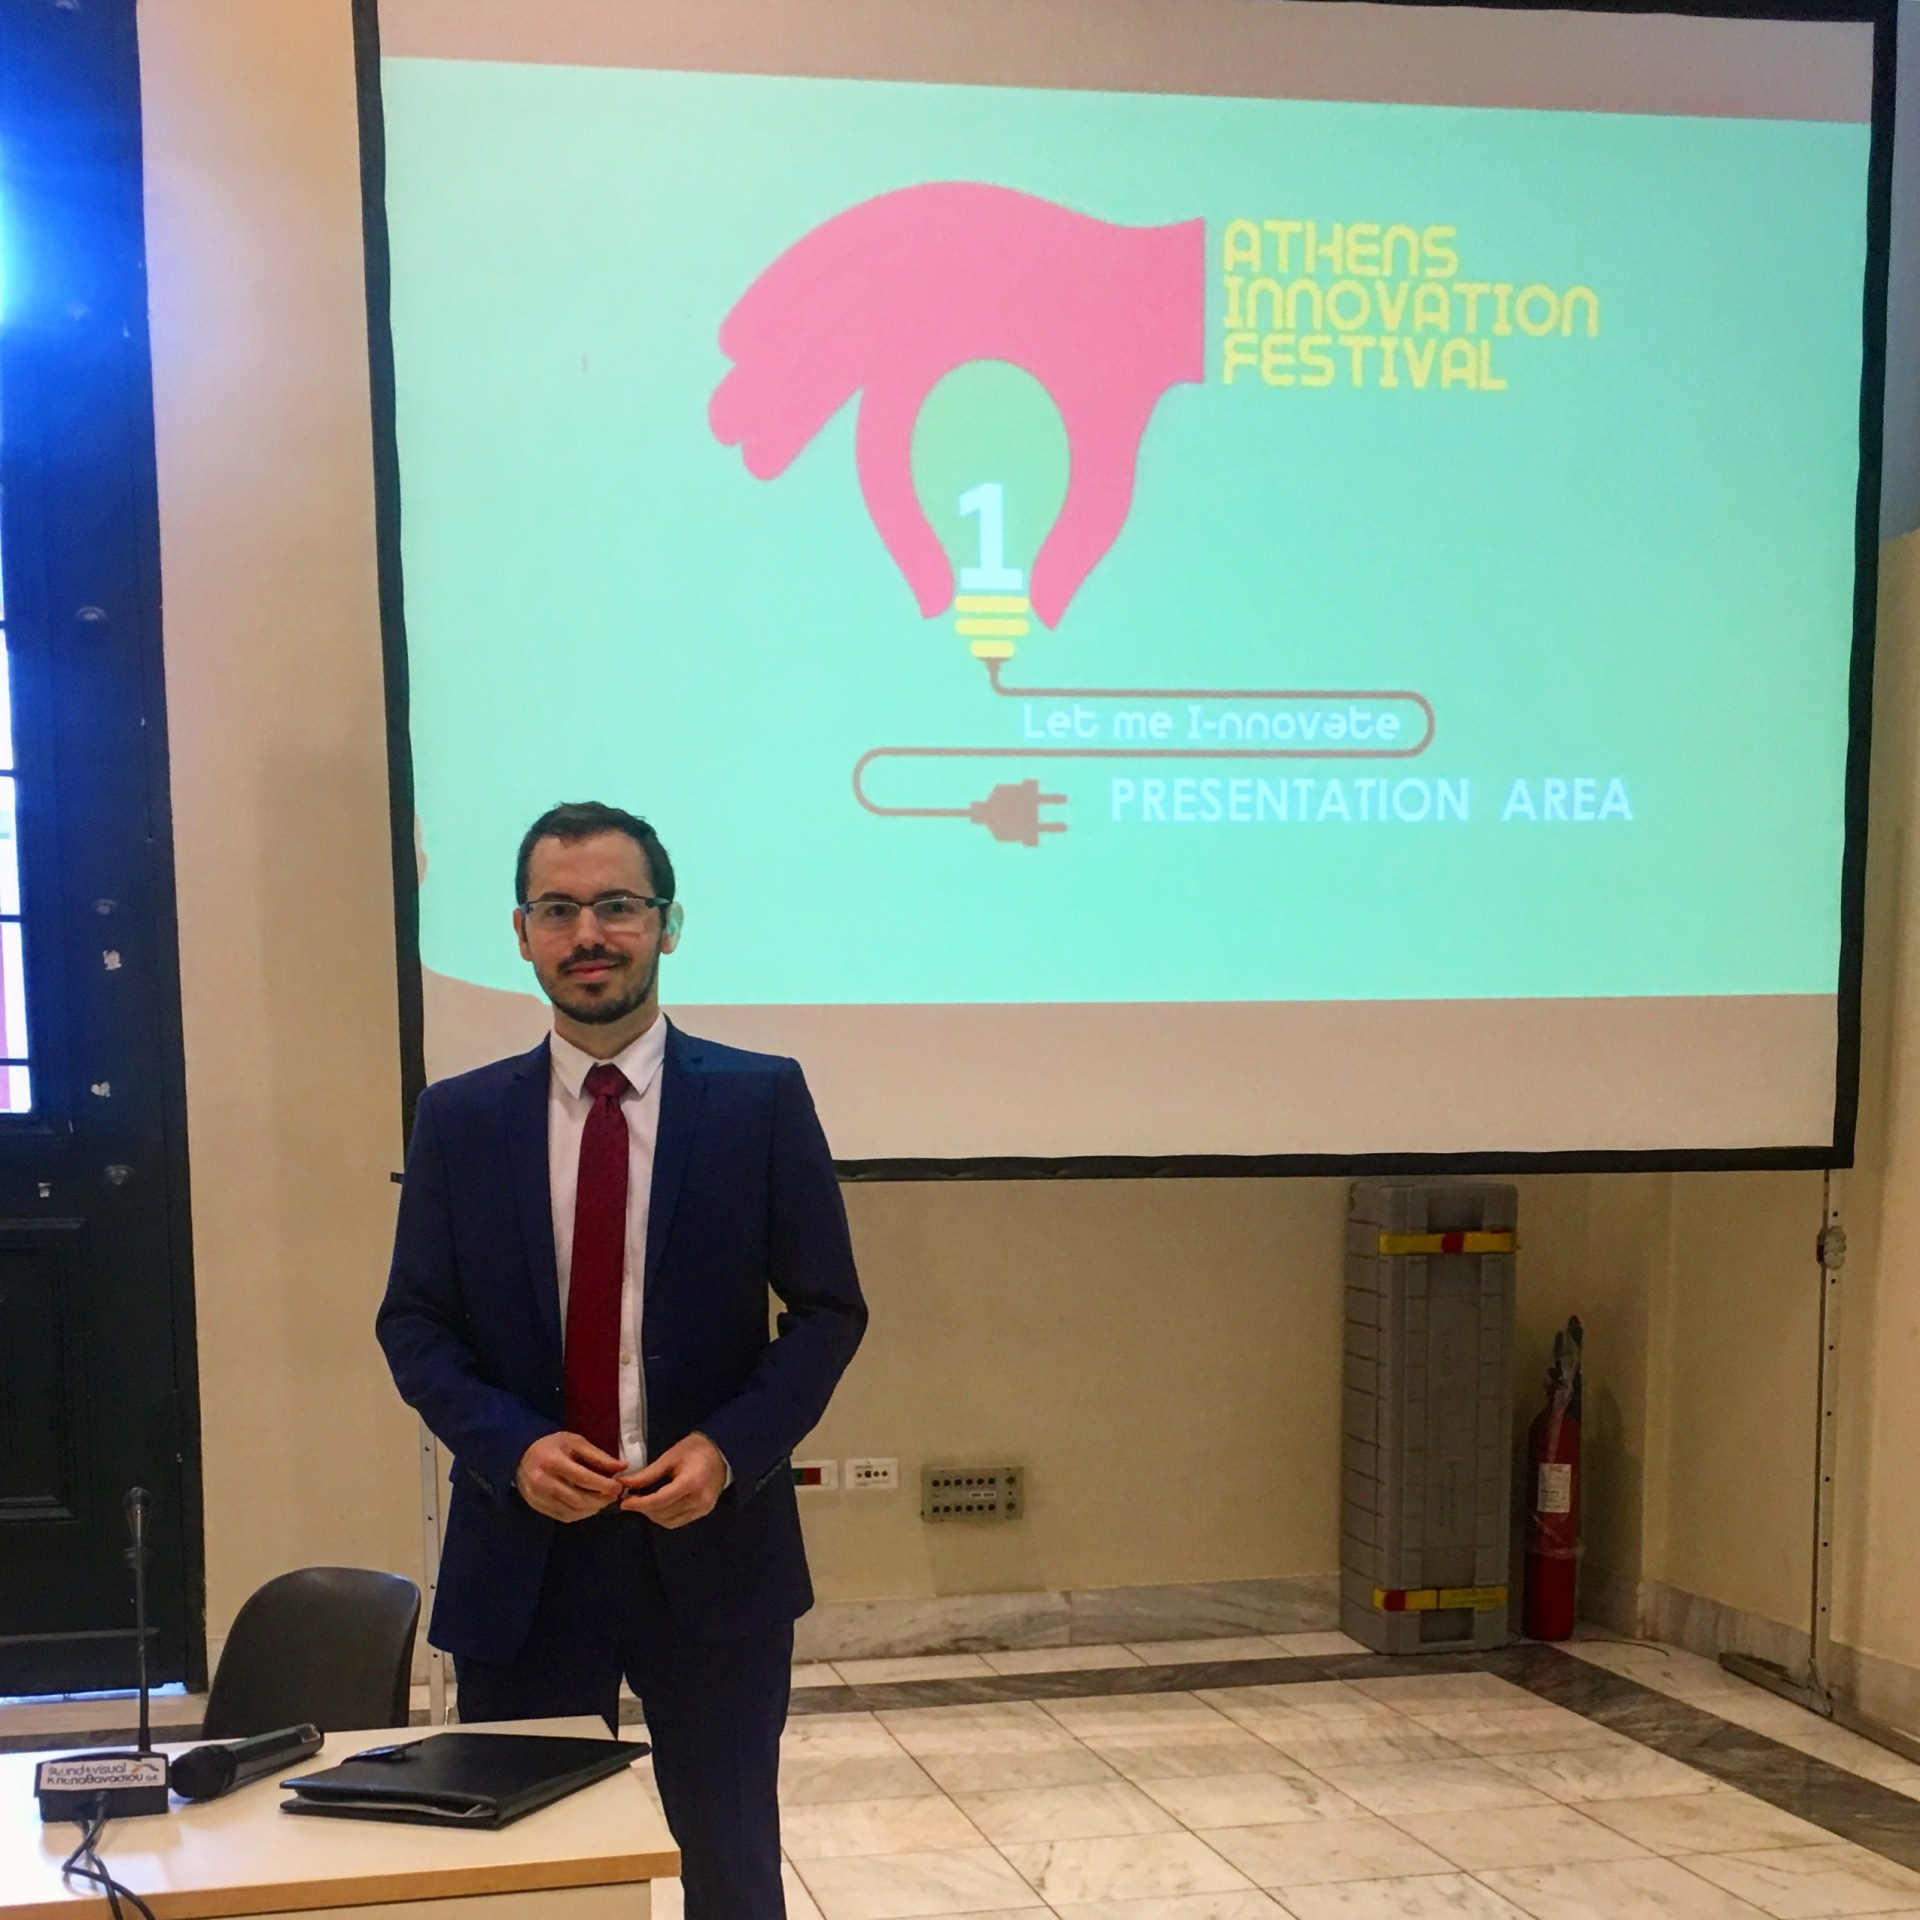 Athens Innovation Festival!